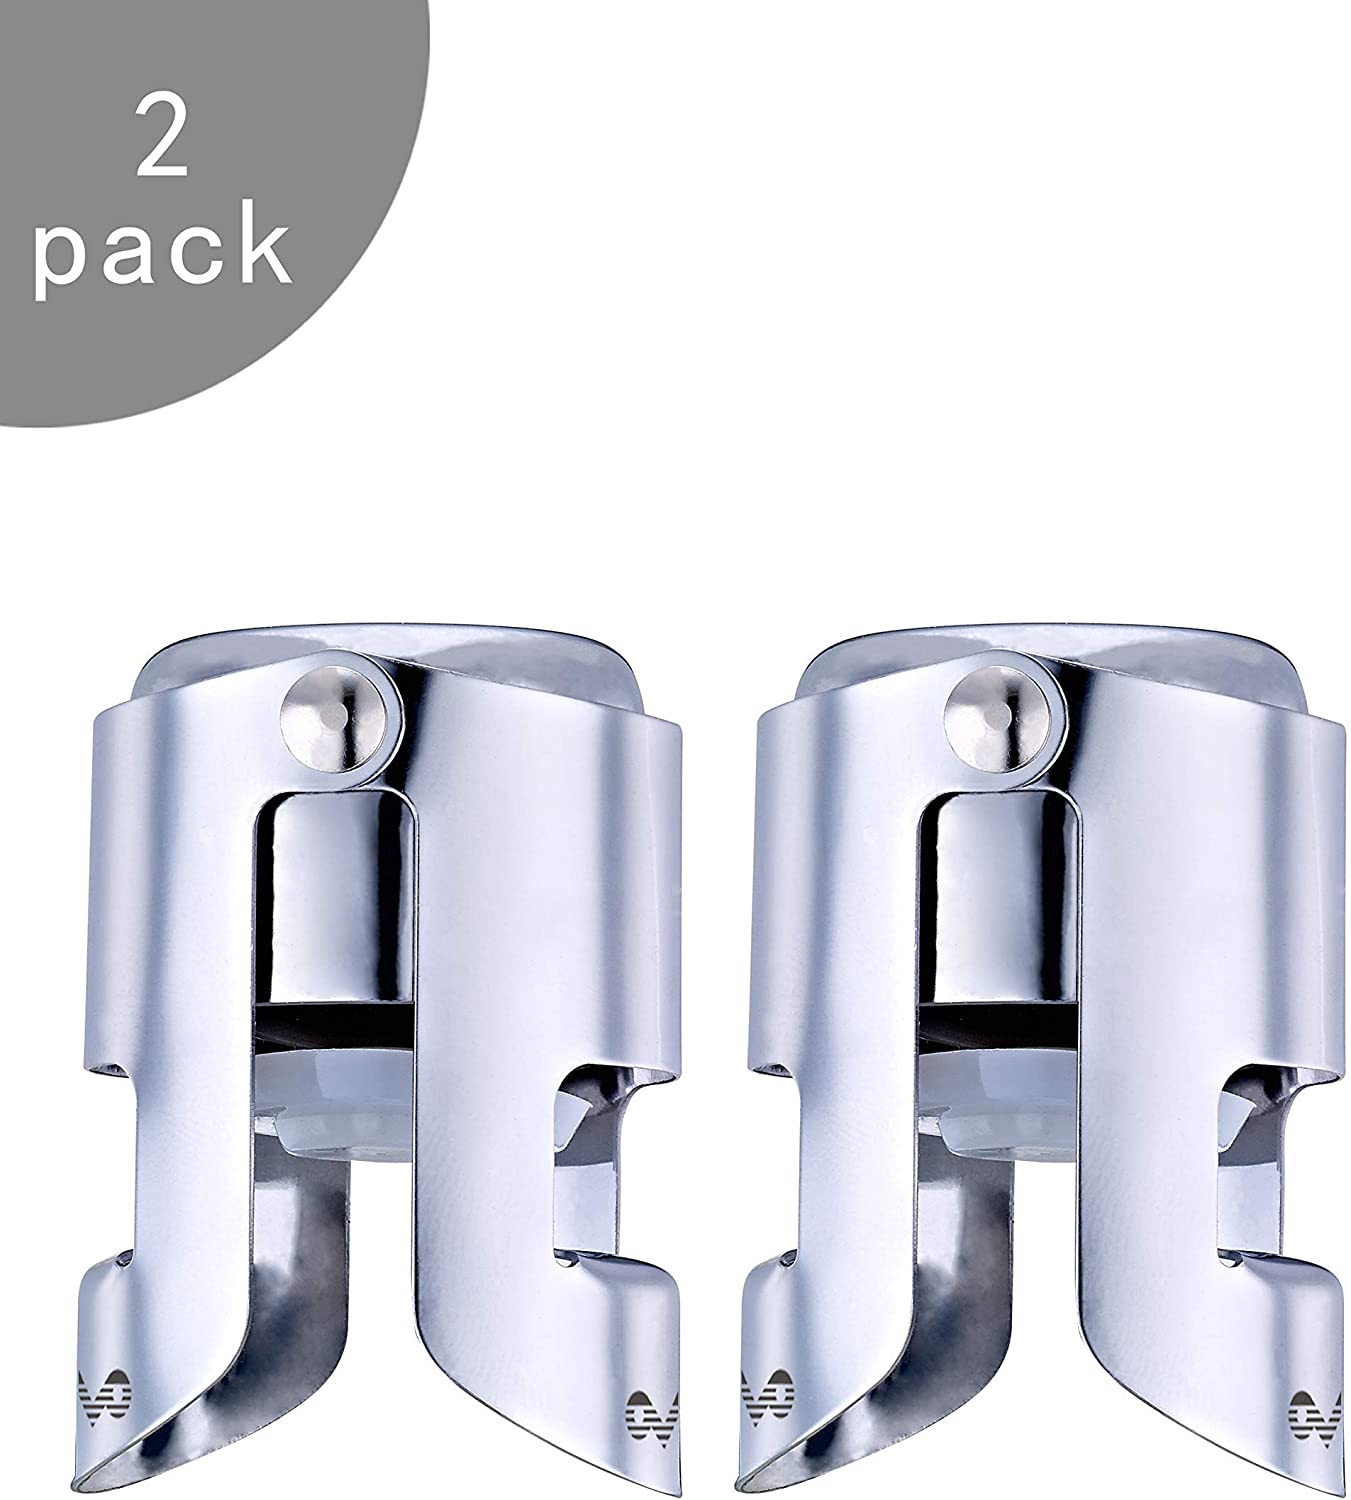 OWO Champagne Stopper with Stainless Steel, Champagne Saver Plug with Food Grade Silicone, Reusable Bottle Sealer Keeps Champagne Fresh, Best Champagne Accessories Gift (2pack set)